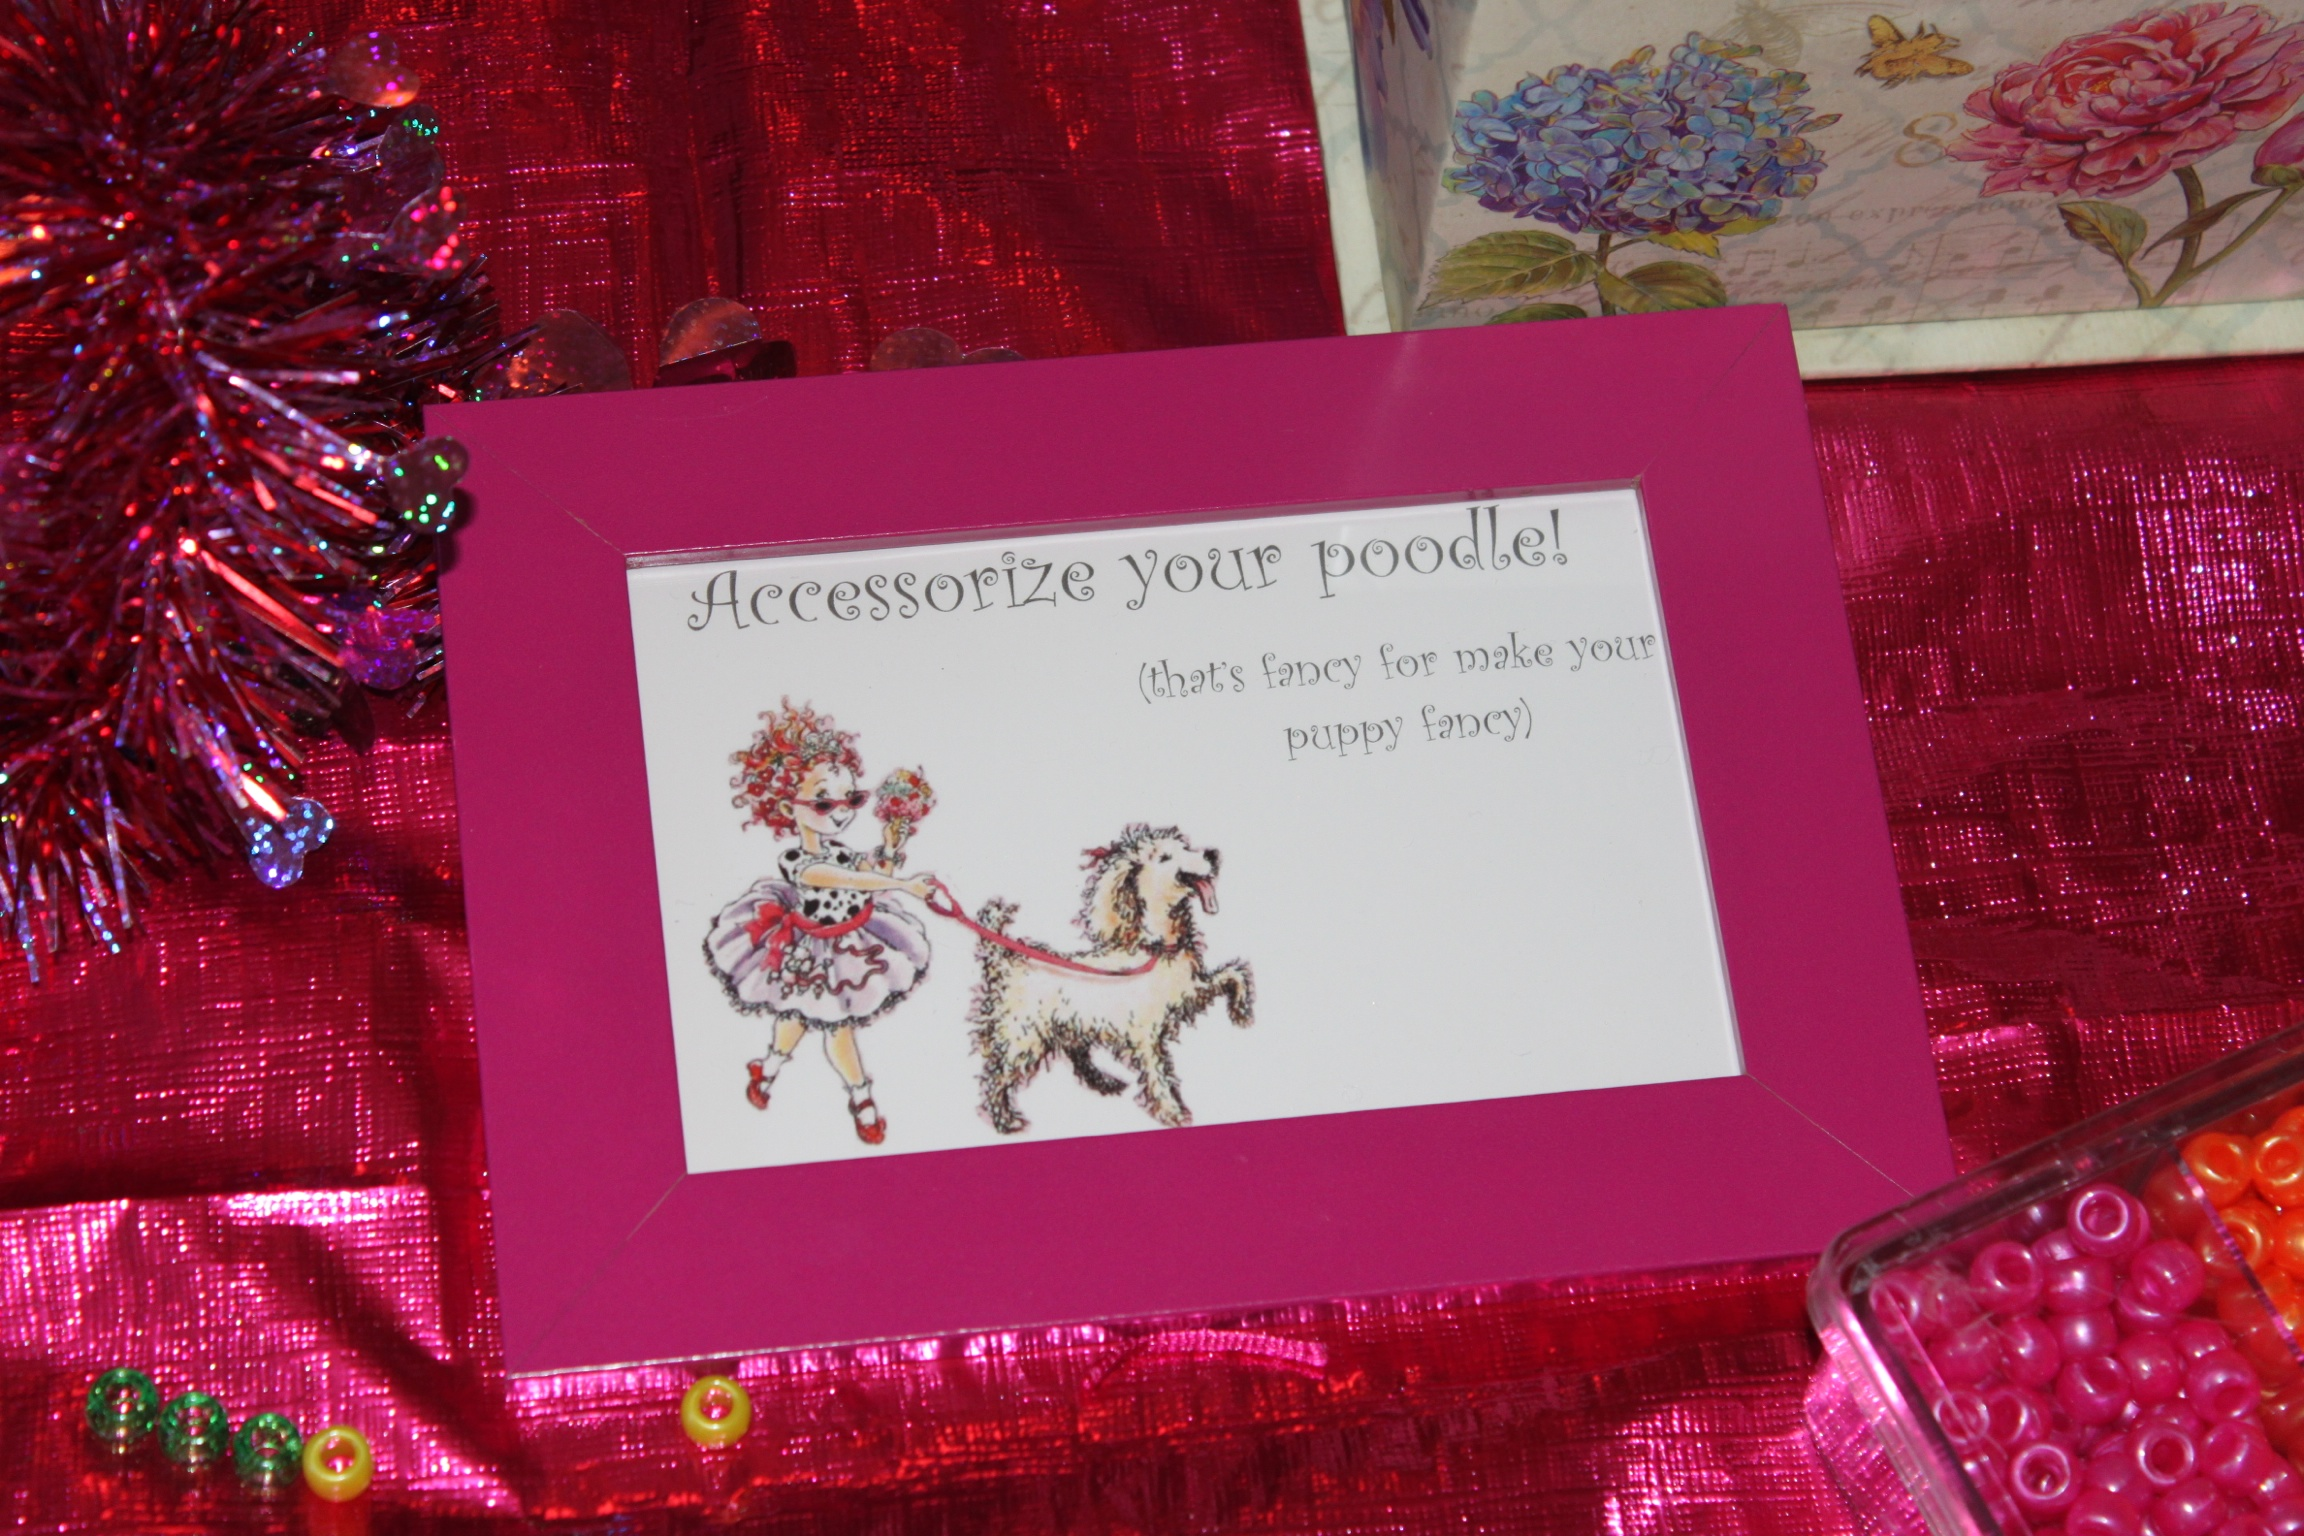 Personalize your poodle